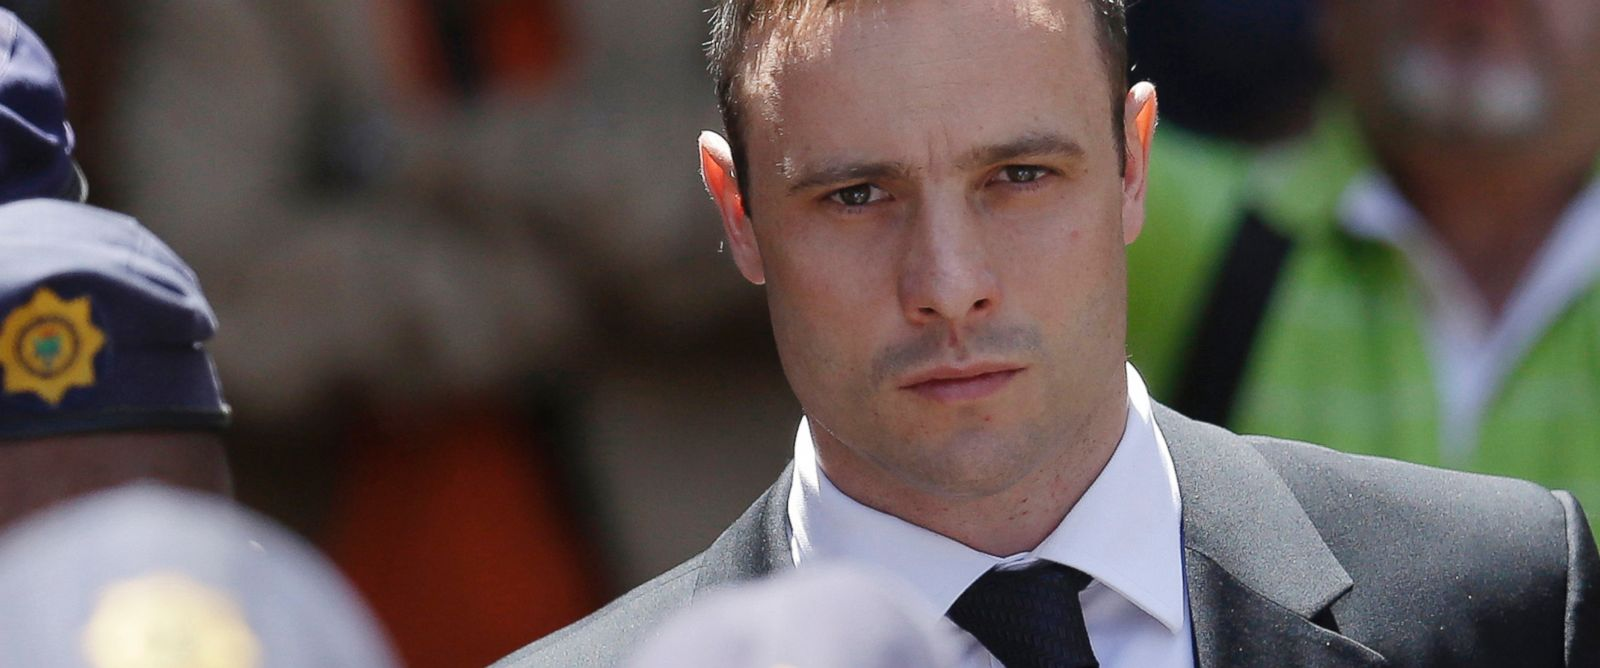 PHOTO: Oscar Pistorius is escorted by police officers as he leaves the high court in Pretoria, South Africa, Oct. 17, 2014.